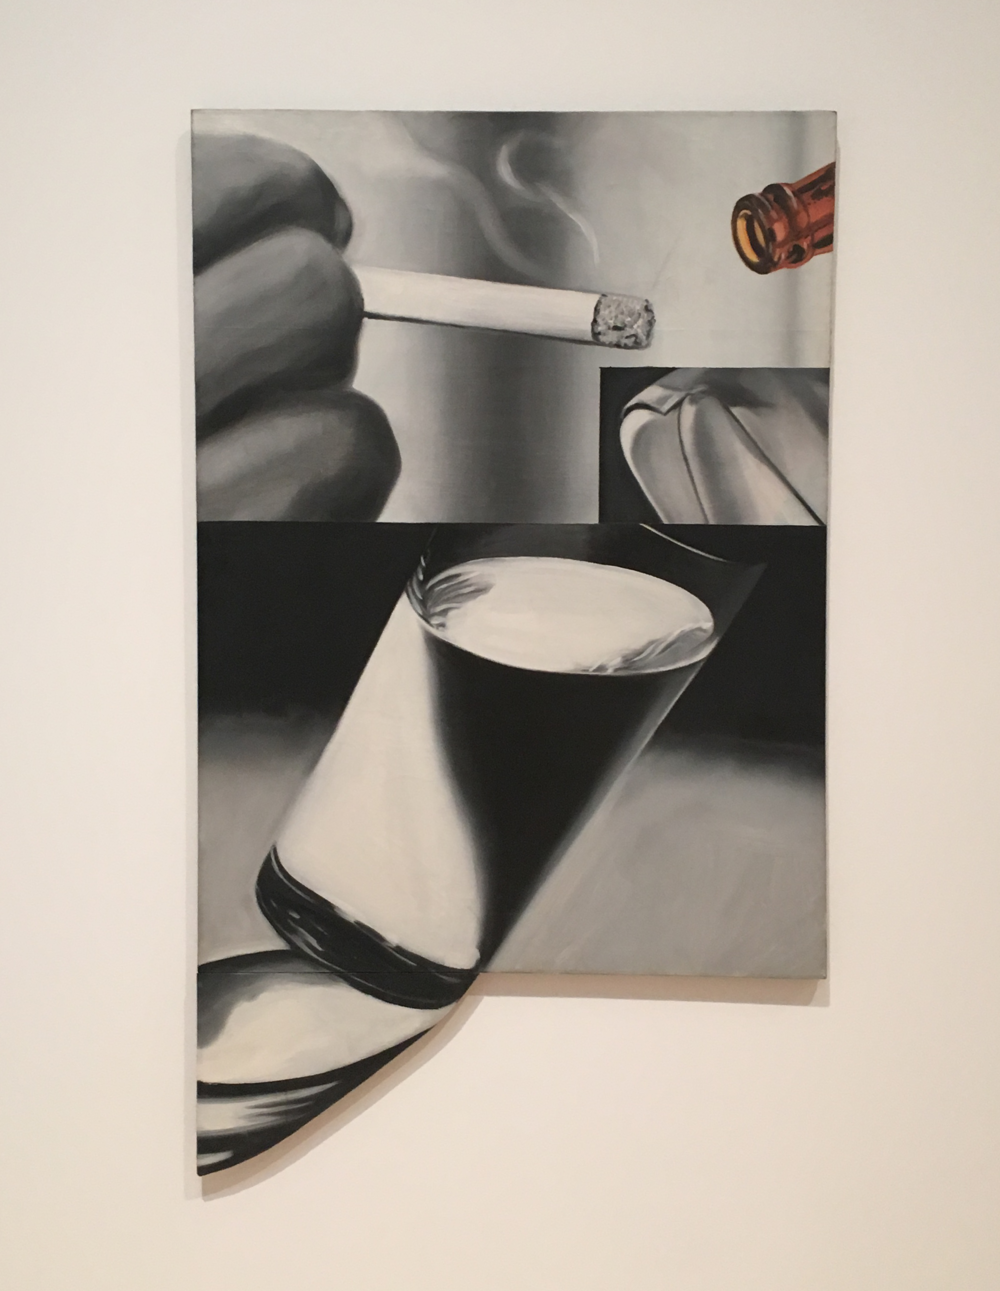 Rosenquist, I love his work. Reminds me of eons ago working at Postrio—there was a huge painting by him in the main dining room.